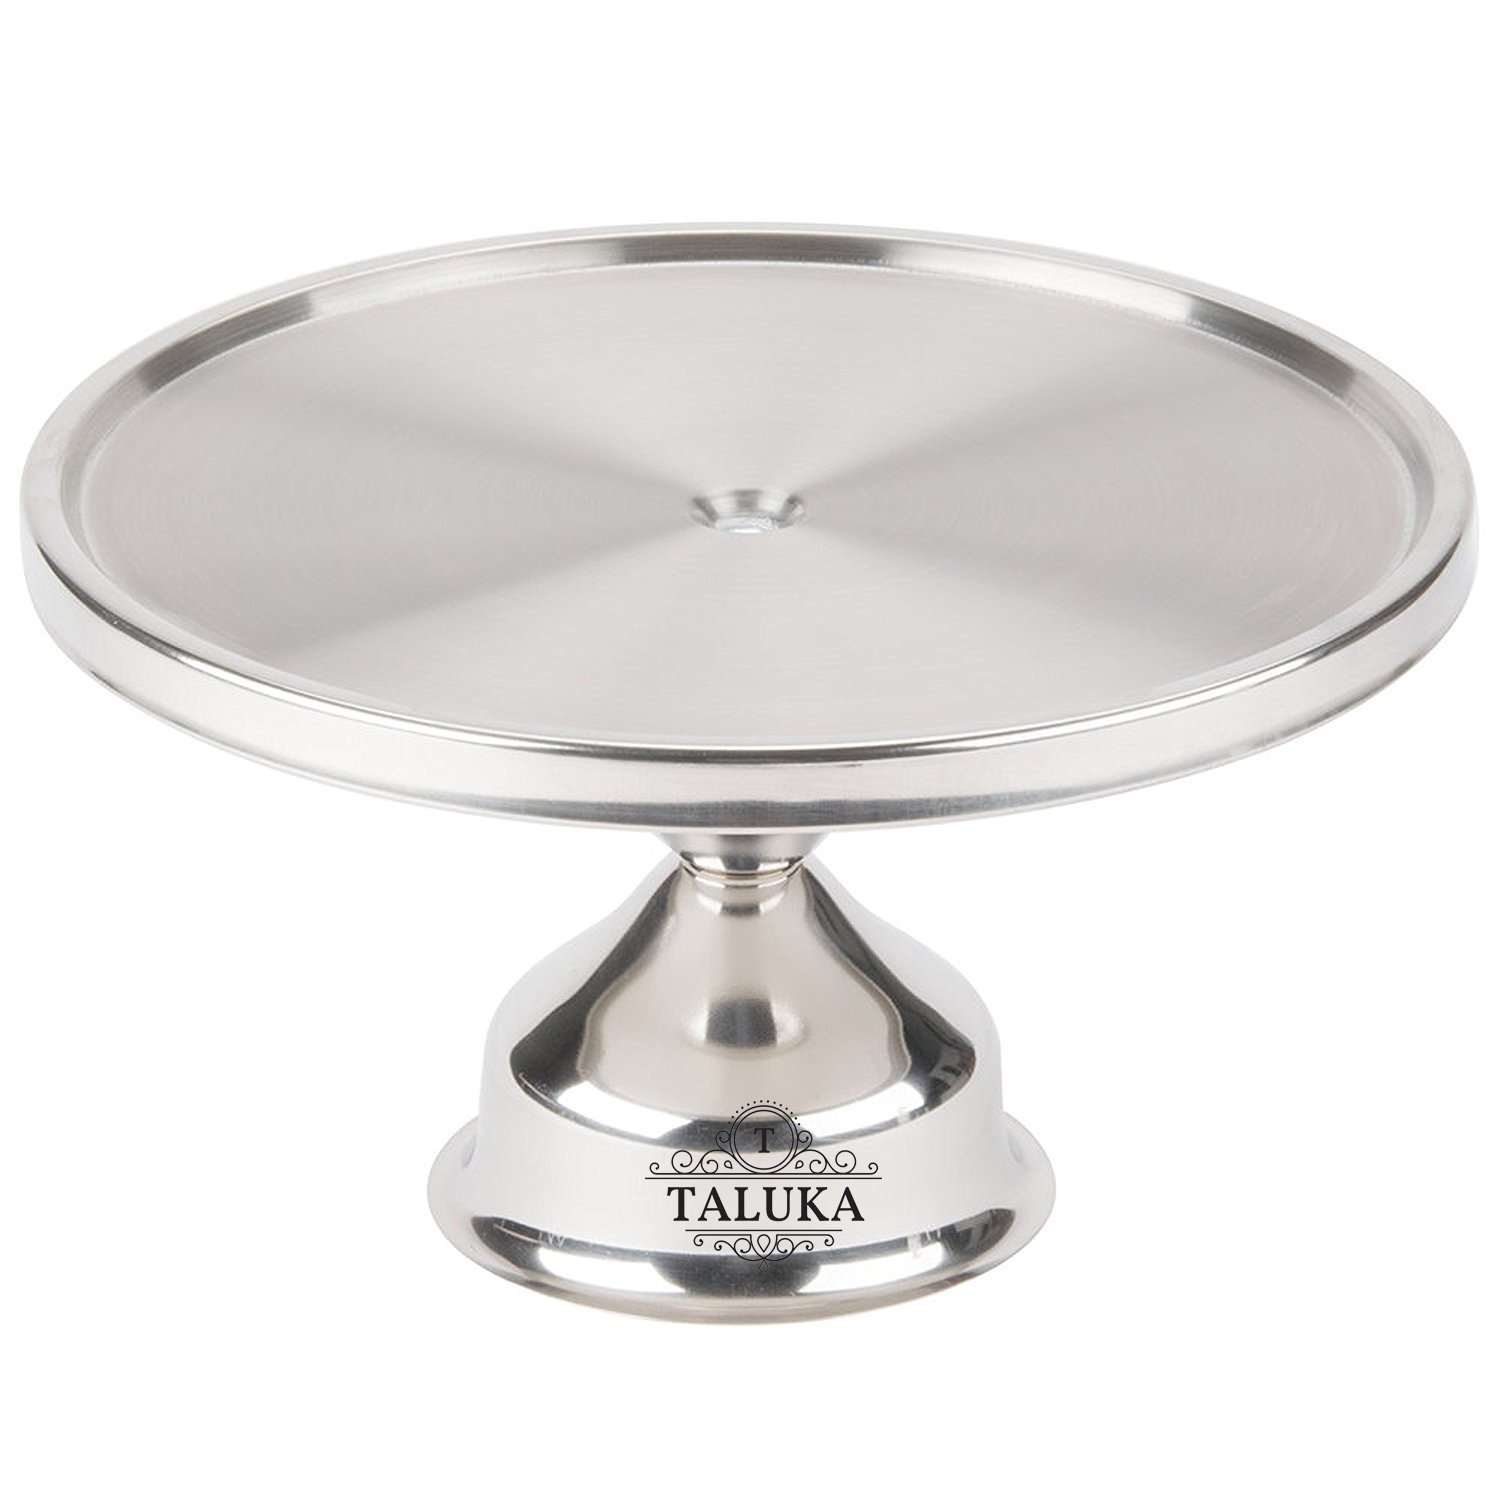 Stainless Steel Non-Revolving Round Desert Stand, Cake Stand Pizza Stand